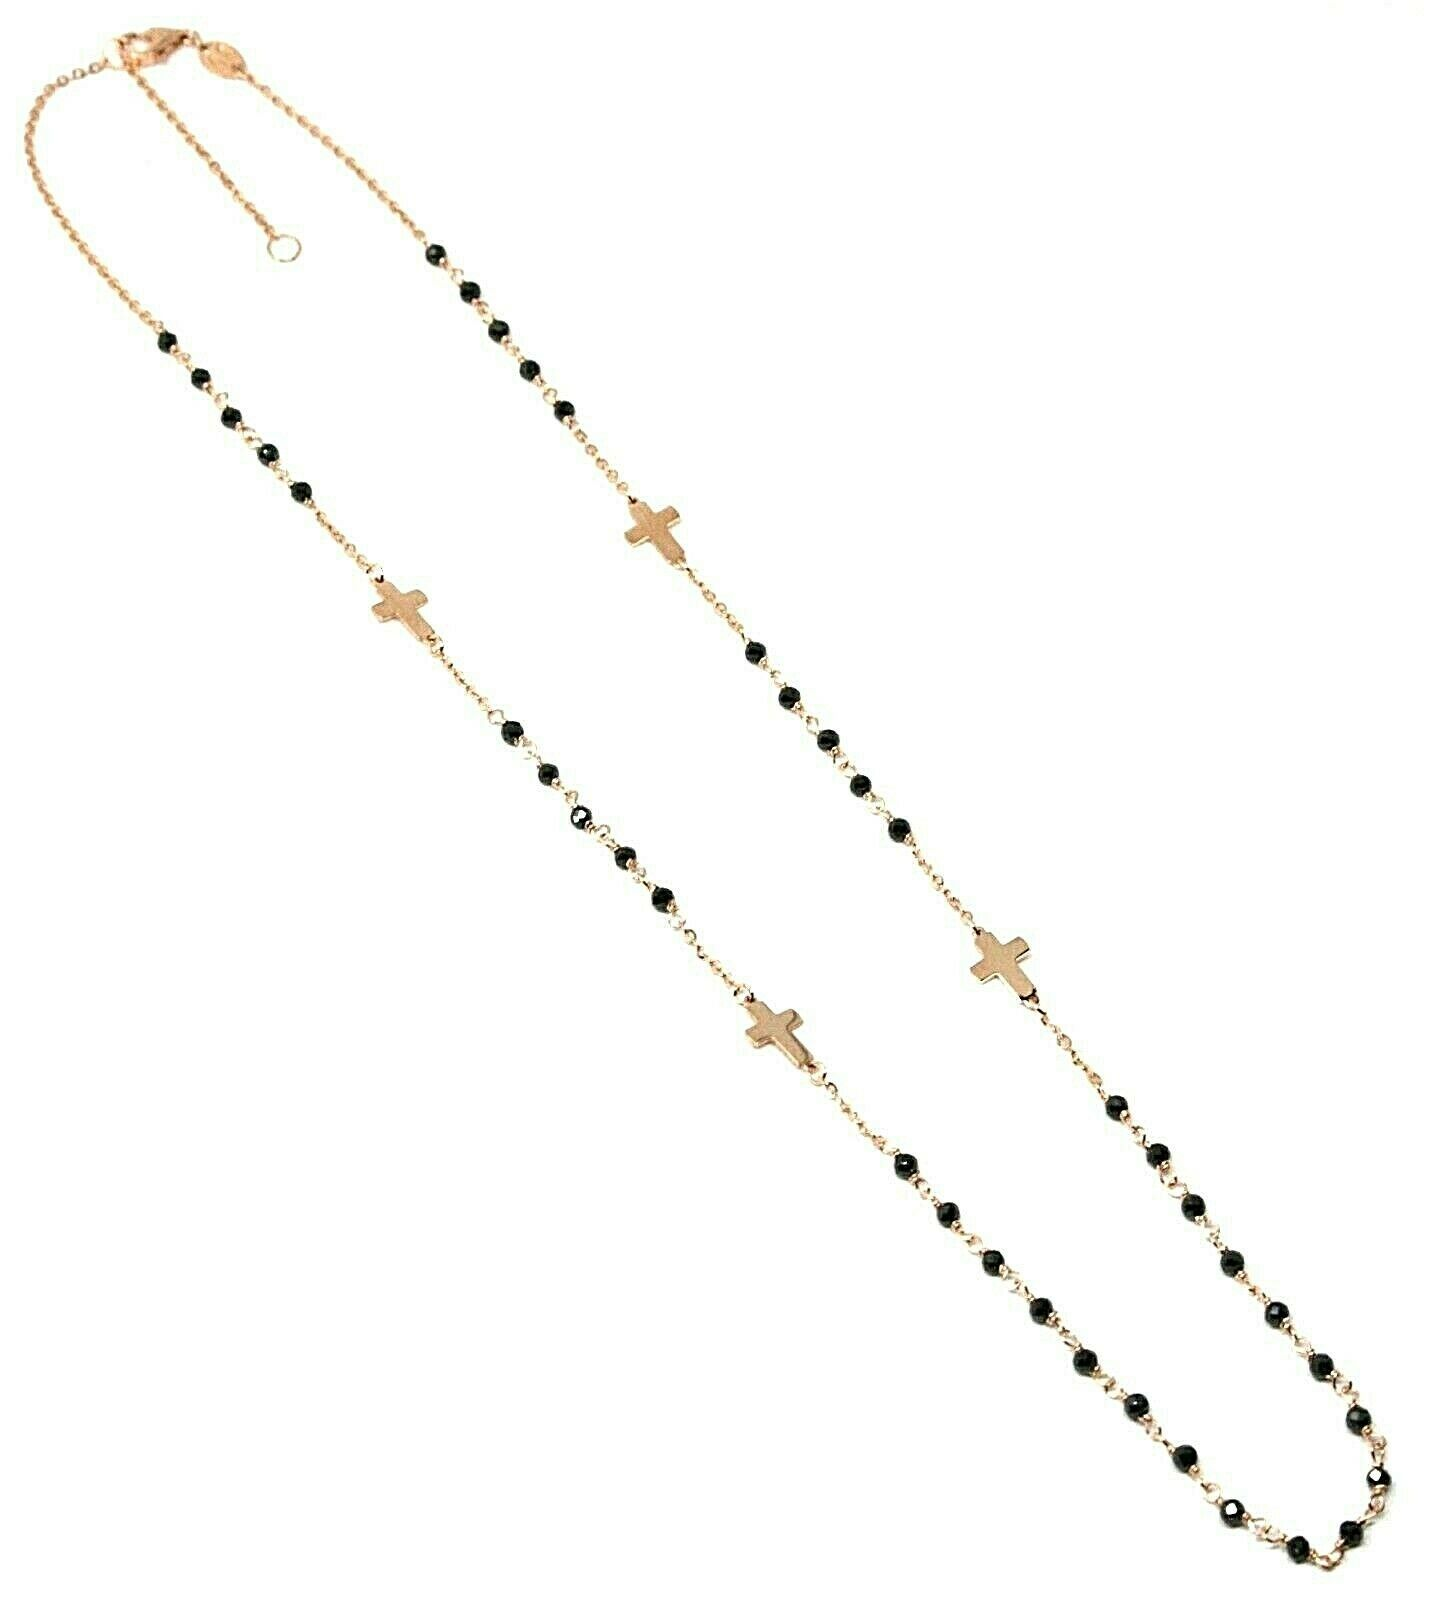 18K ROSE GOLD NECKLACE, FACETED BLACK SPINEL FLAT CROSS, ROLO CHAIN, ALTERNATE